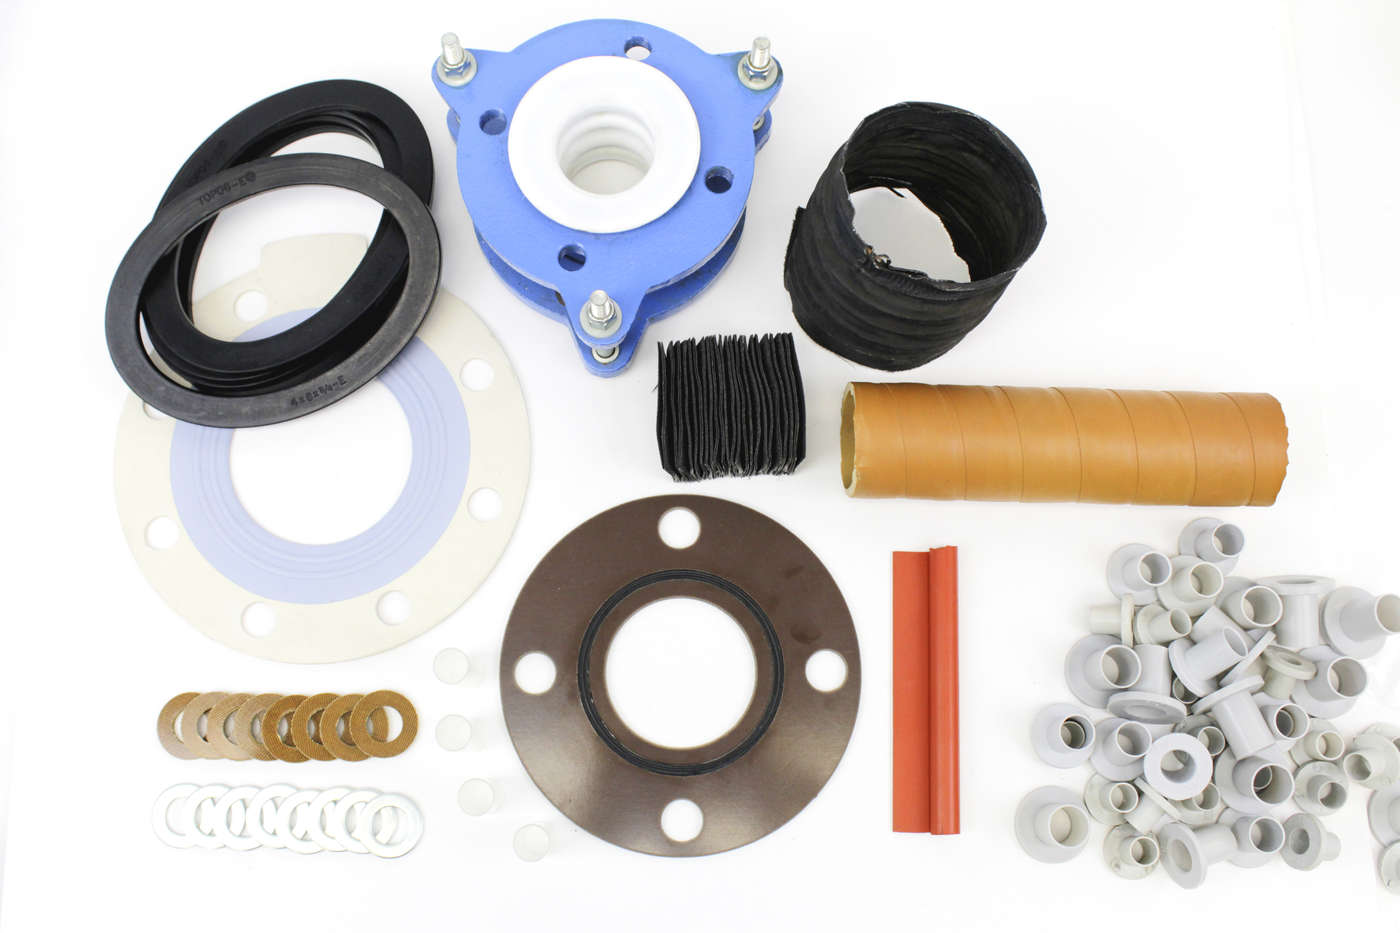 Flange isolation kits